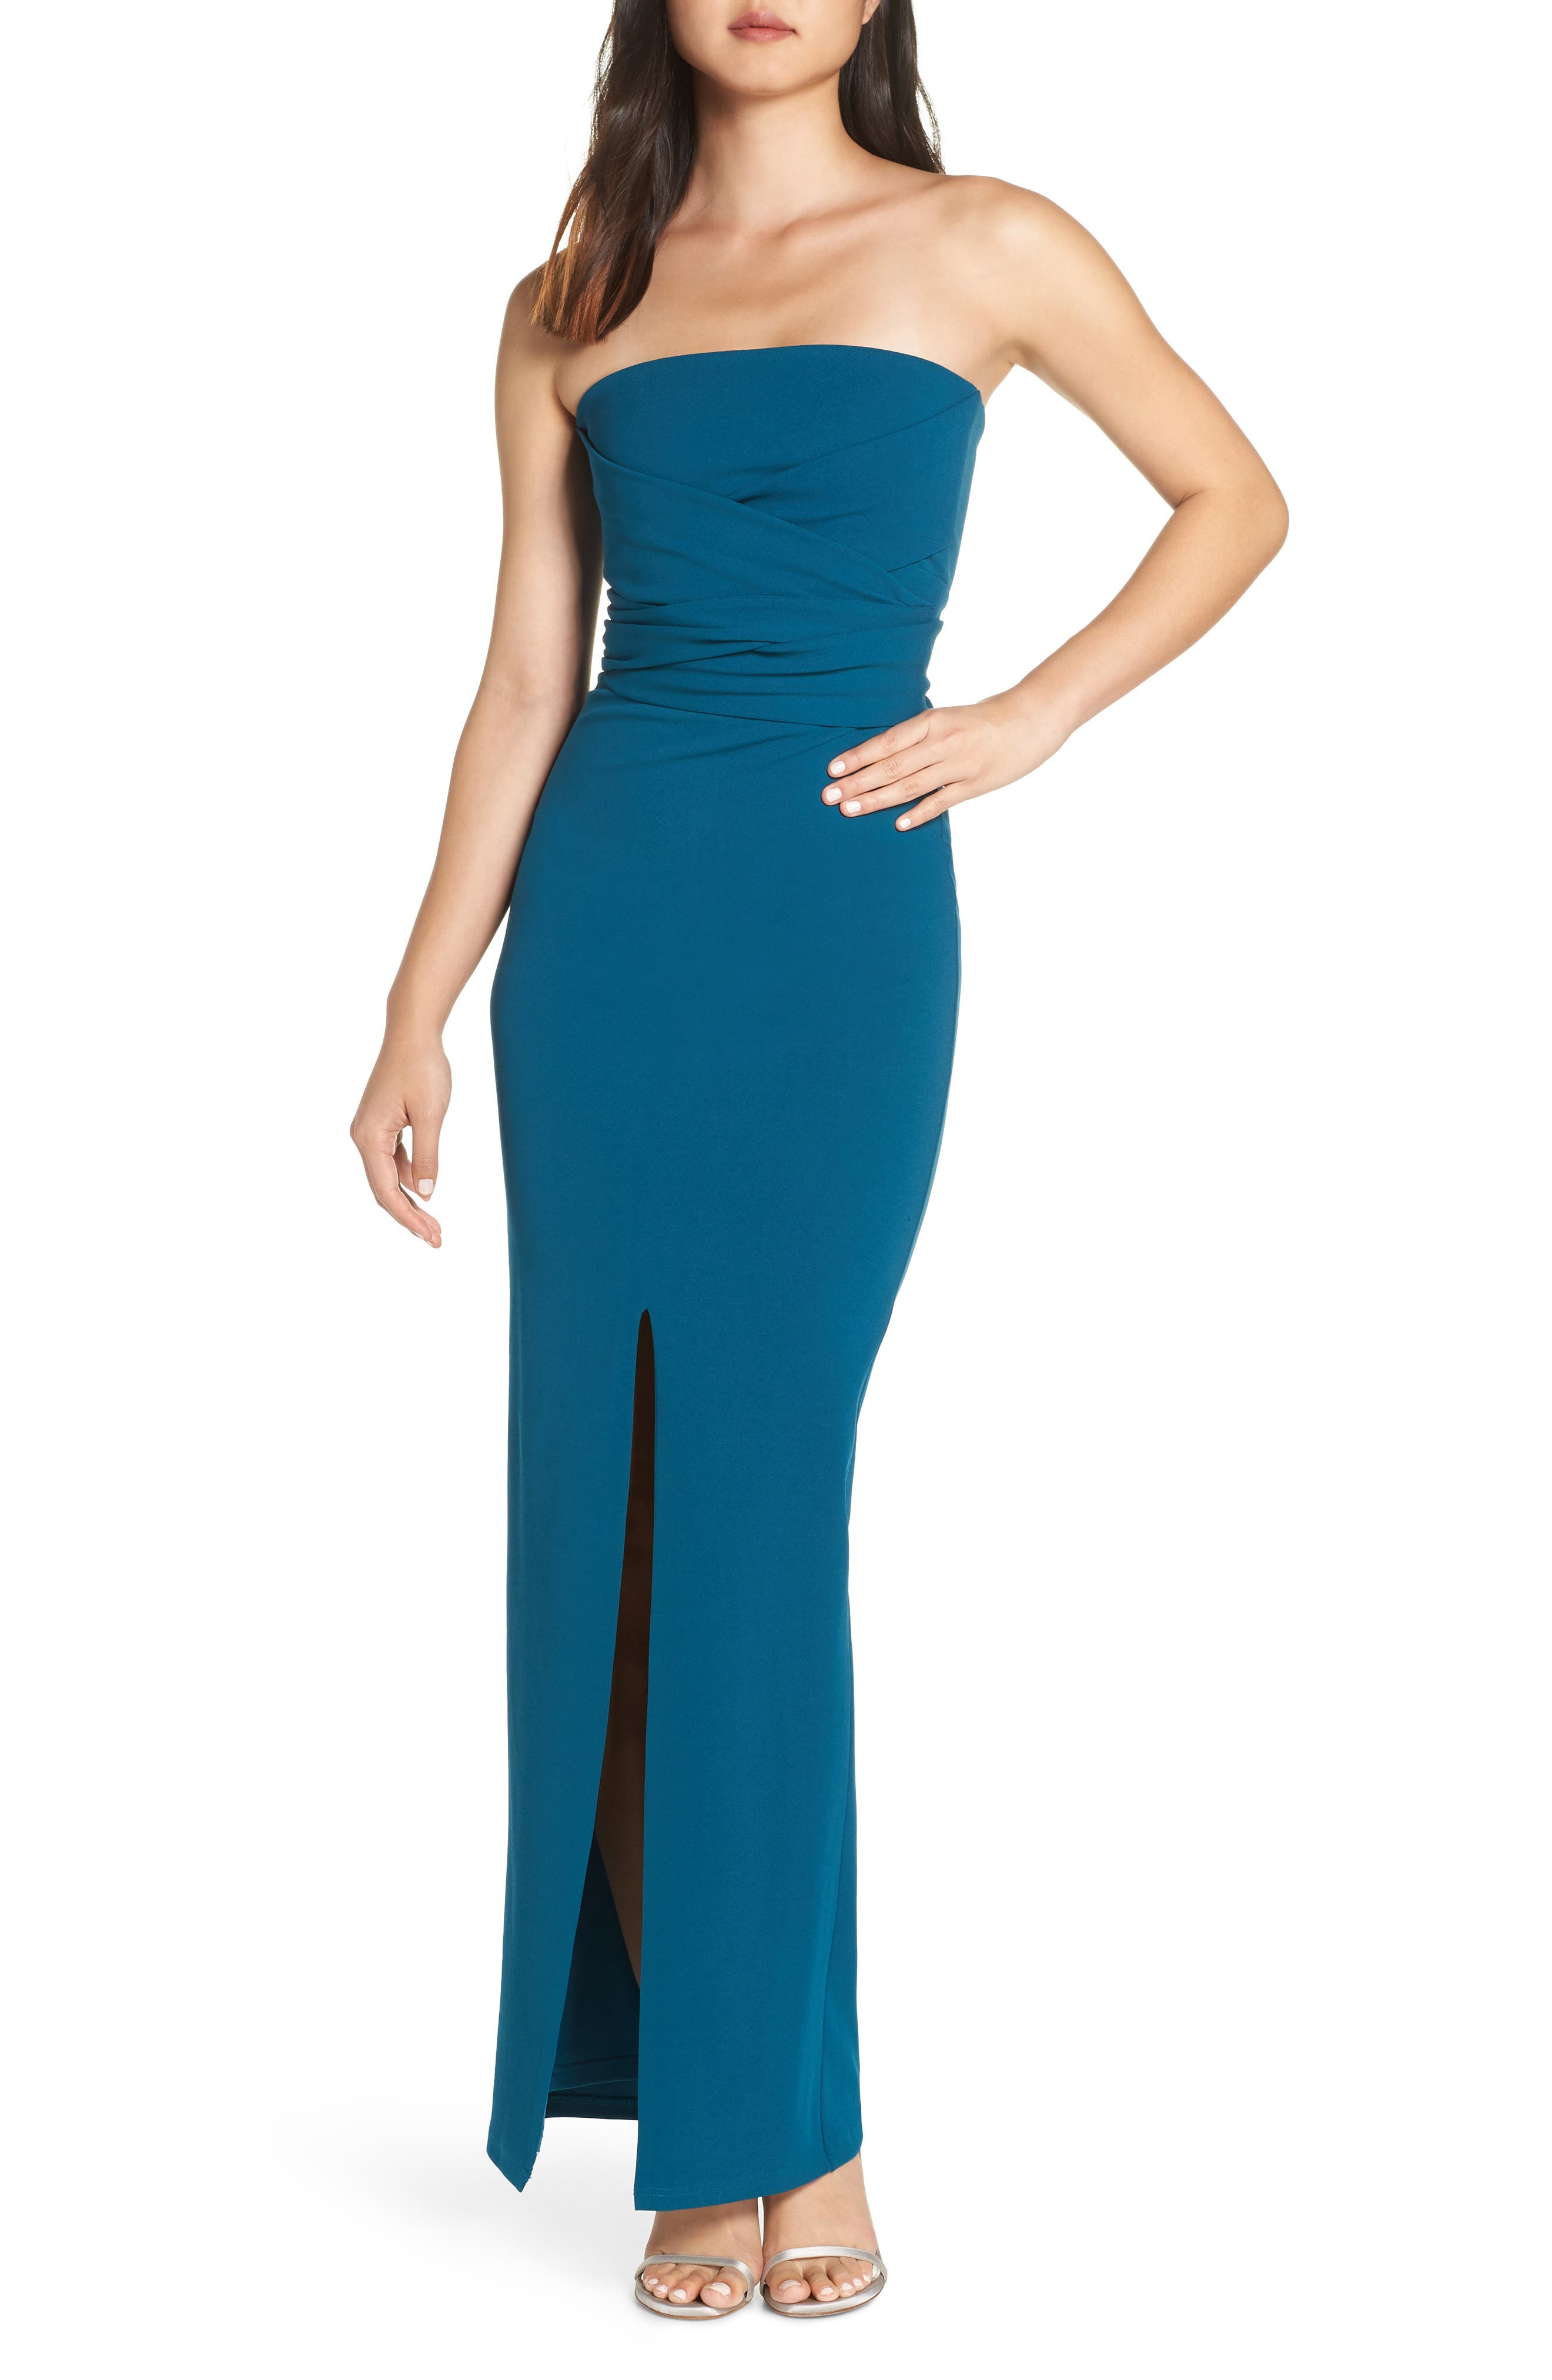 LULUS, Own the Night Strapless Maxi Dress, Main thumbnail 1, color, TURQUOISE